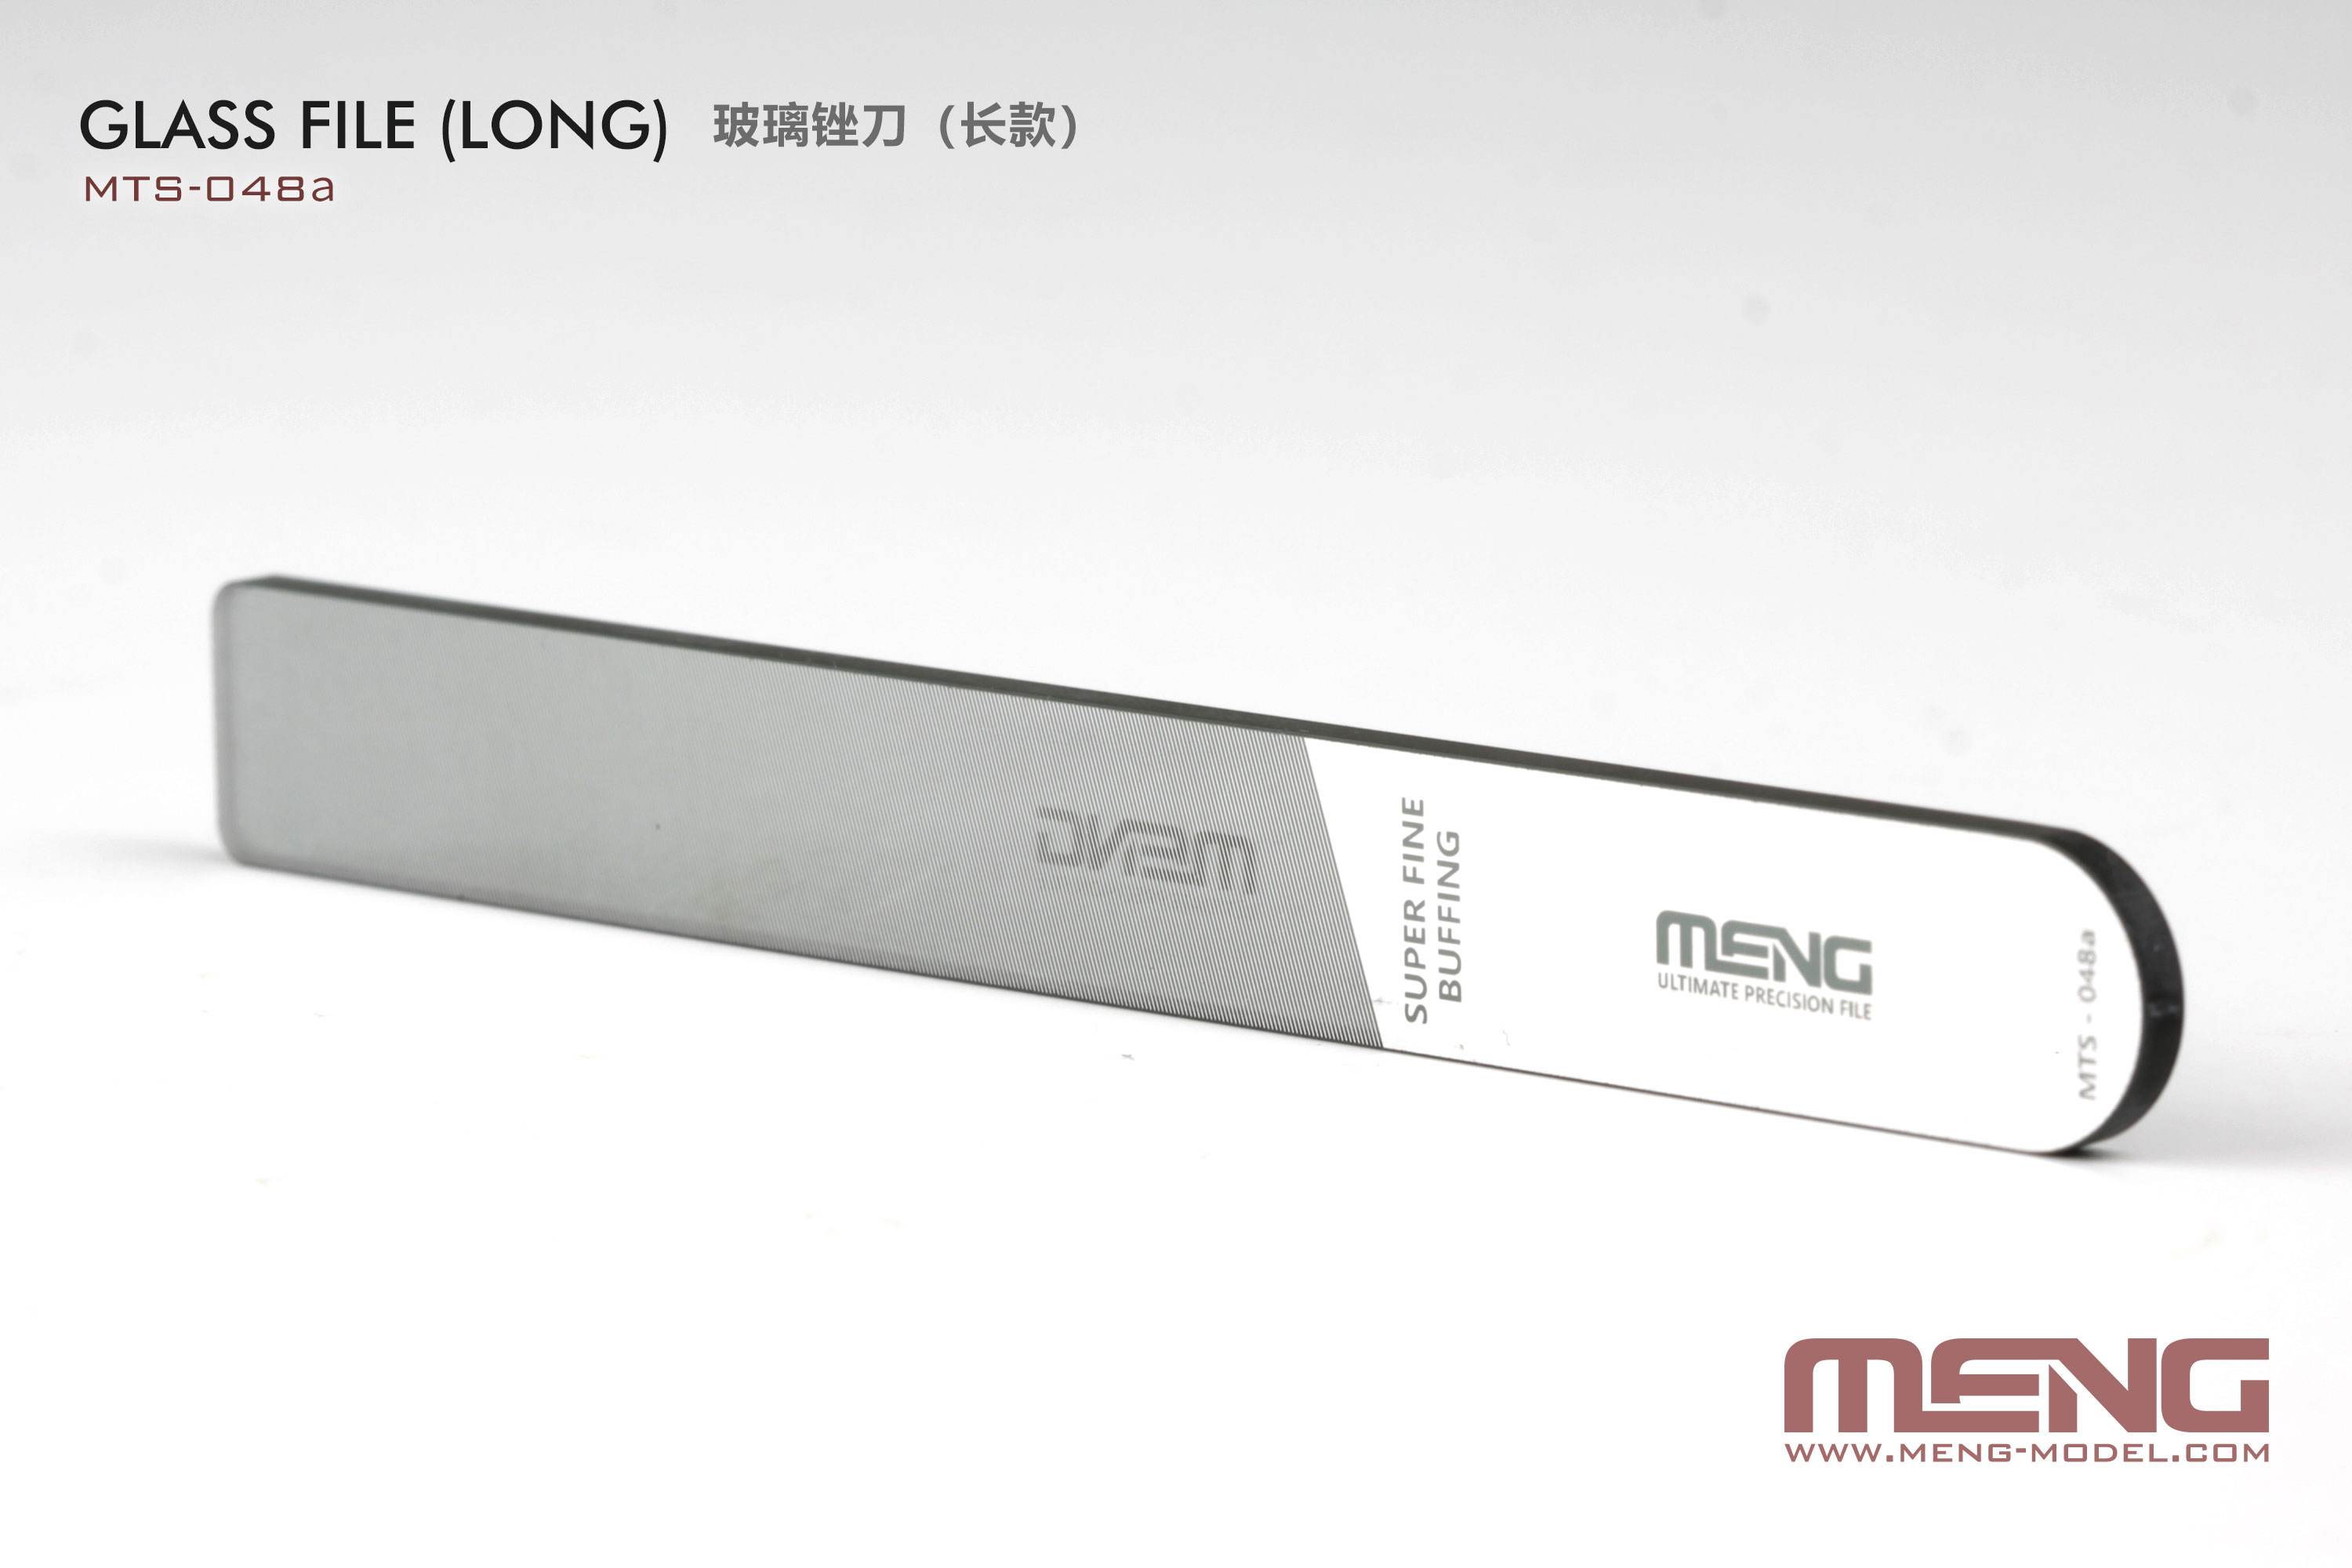 Meng Glass File (long)